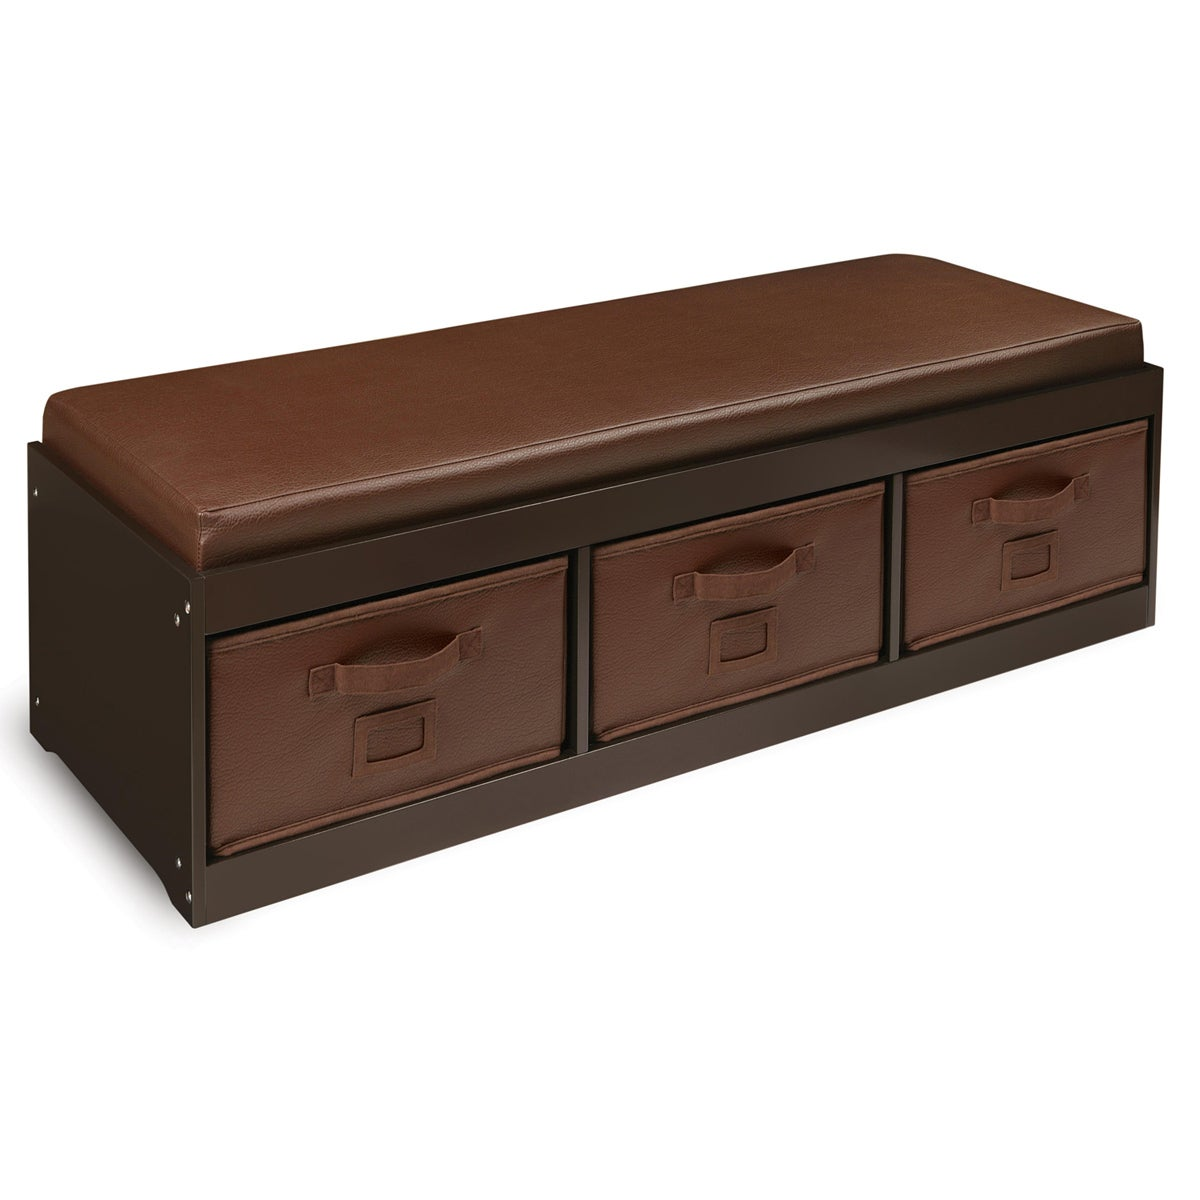 Espresso Kid's Storage Bench with Espresso Bins